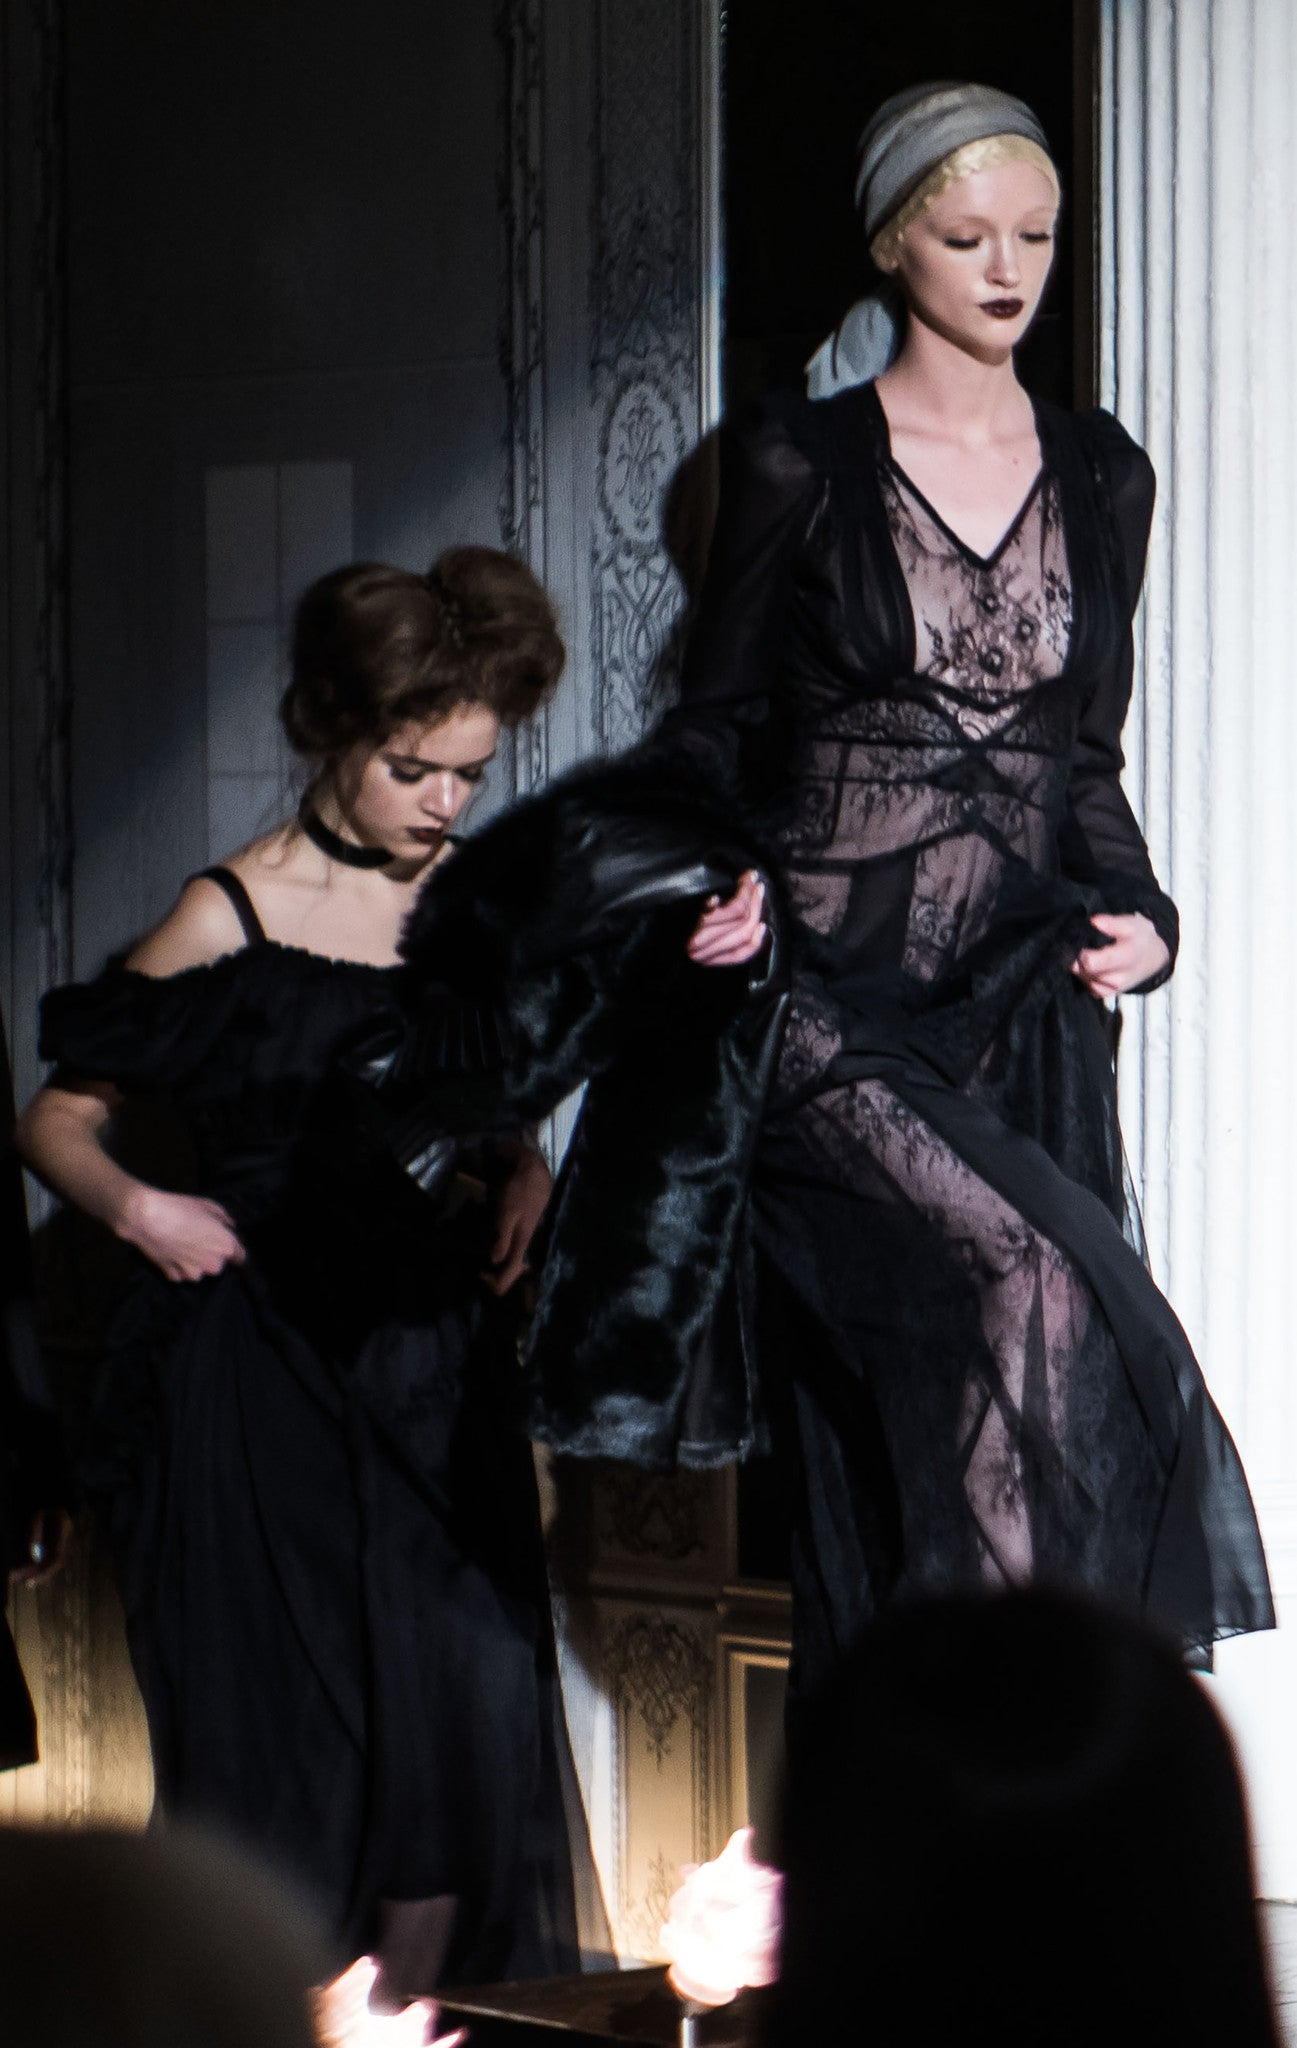 Black French Solstiss Lace Lover Dress The Creator Jung Black Leather Edwardian Collar Shearling Fur Coat  Wendy Nichol Clothing Fashion Designer Handmade in NYC AW14 Ready to Wear Fashion Runway Show Custom Tailoring Made to Measure